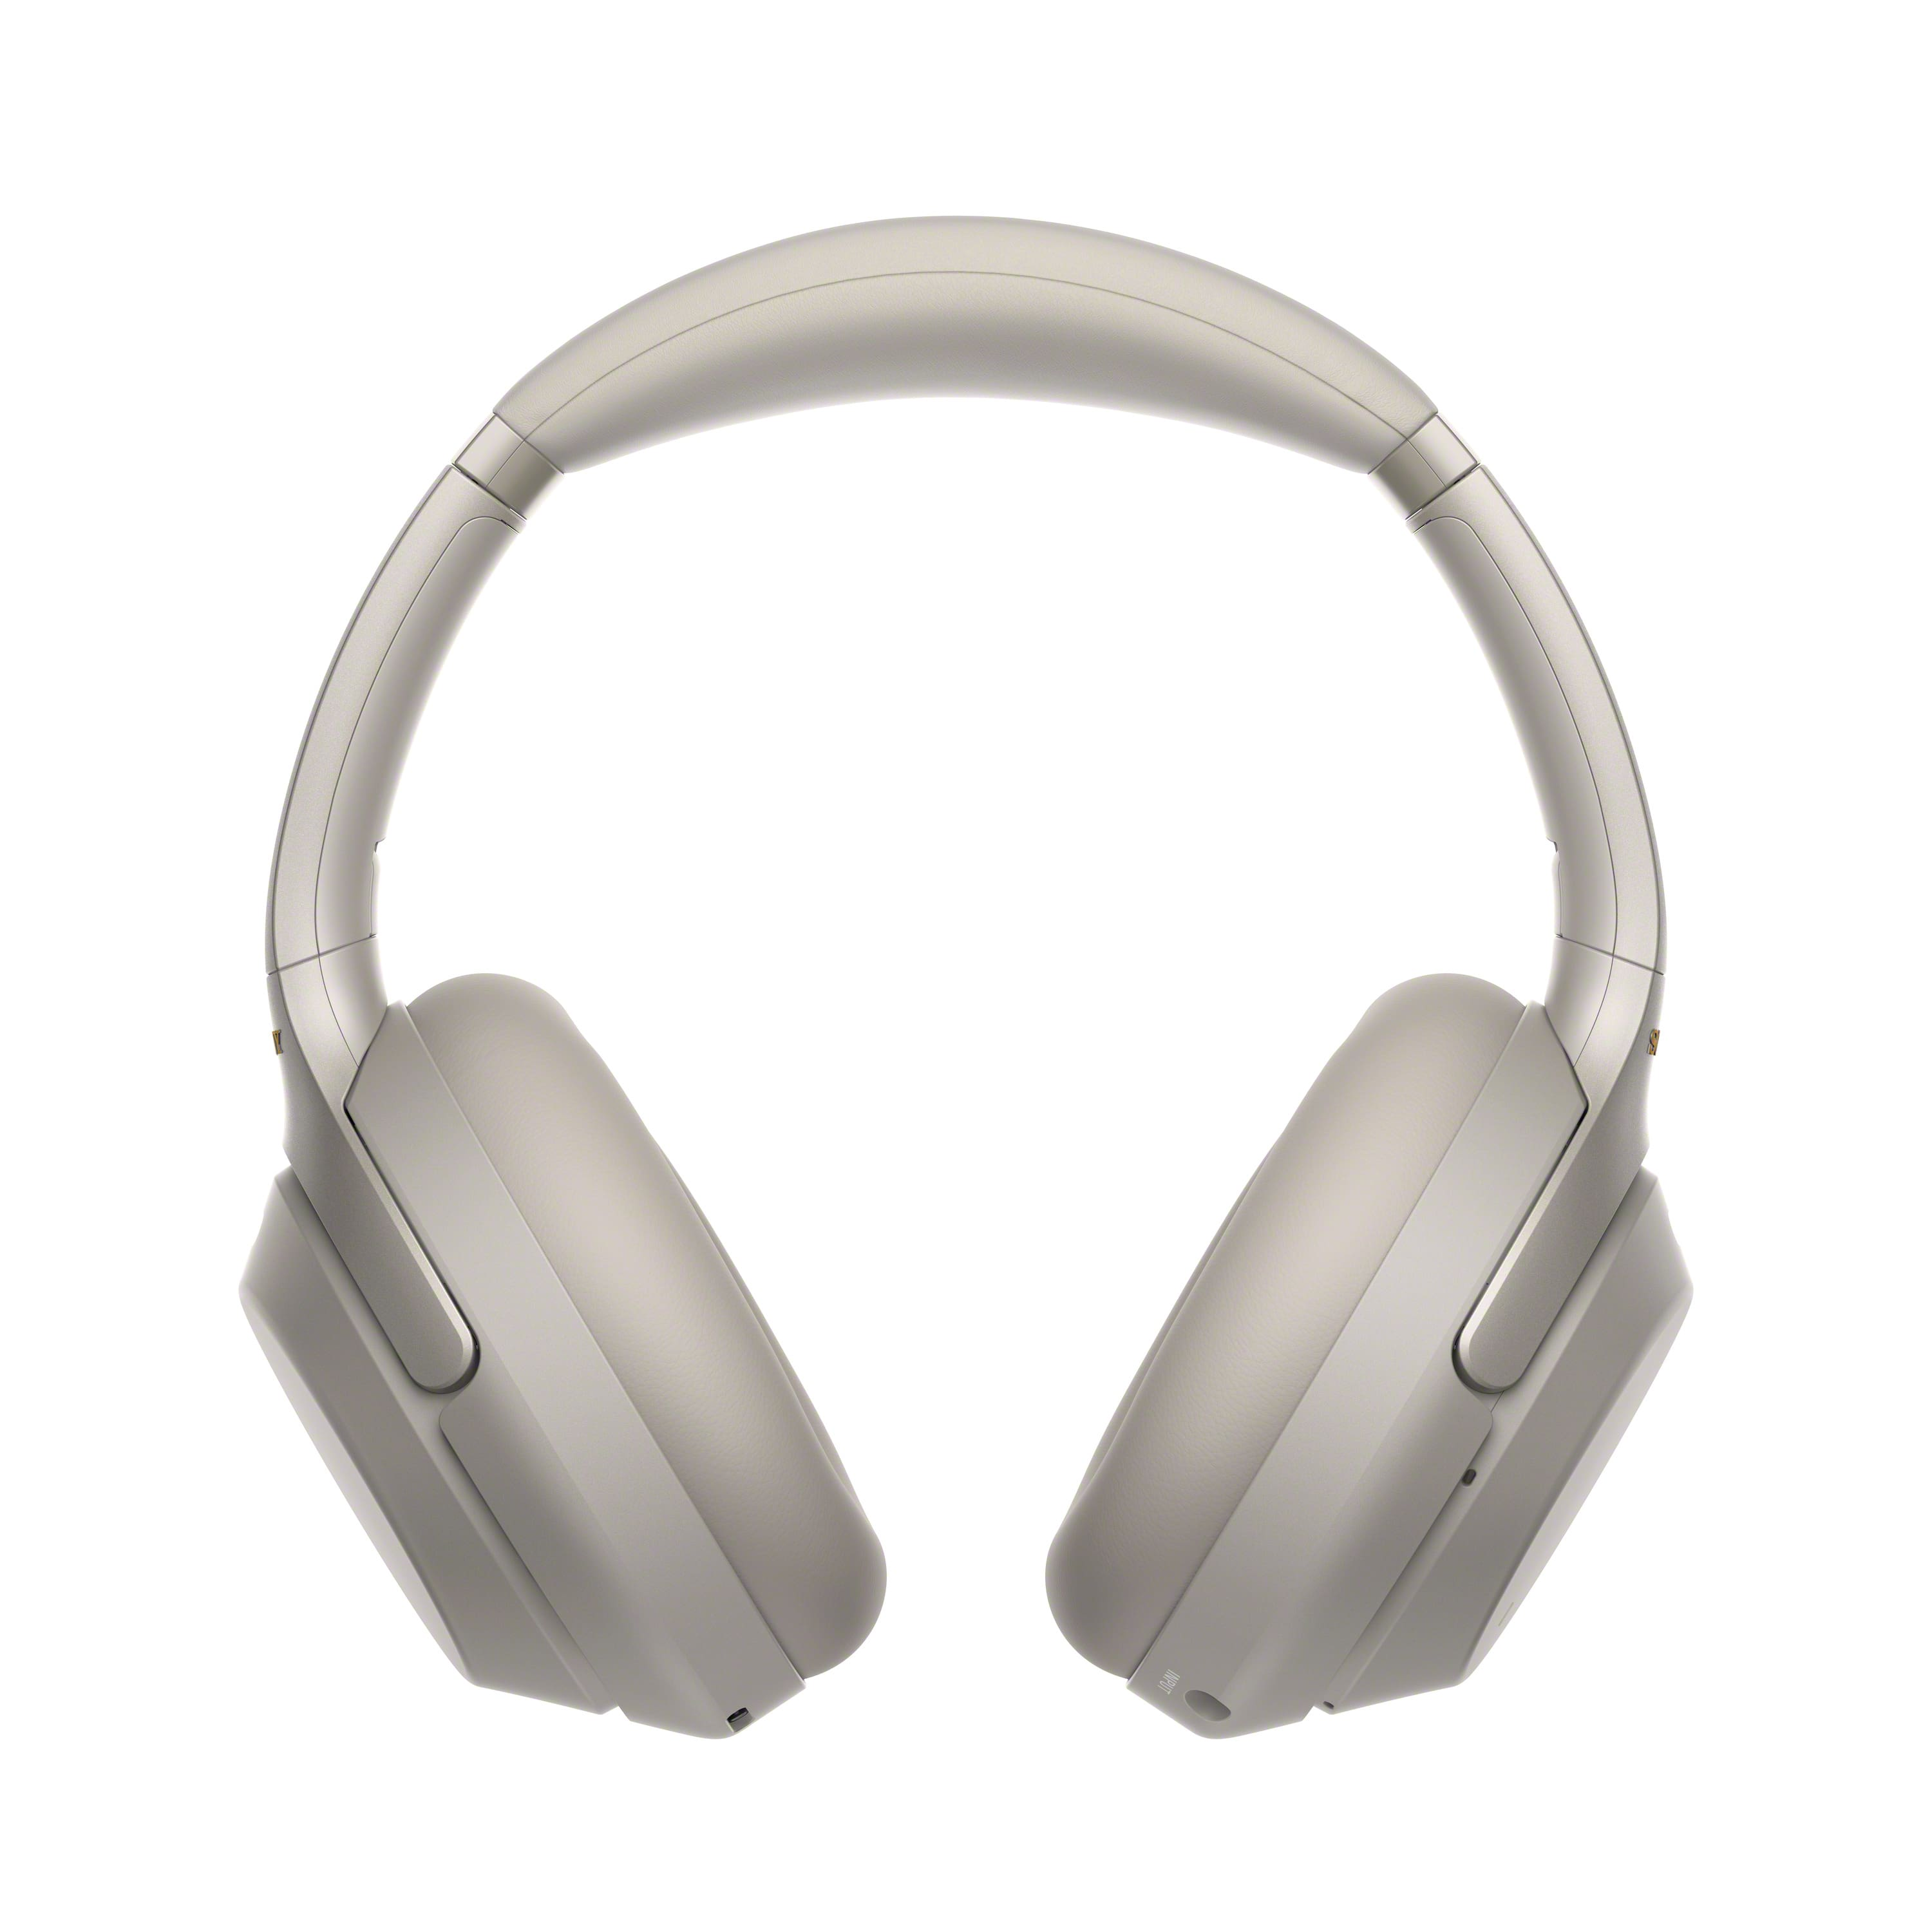 Sony WH1000XM3 Bluetooth Noise Canceling Headphones (Refurb